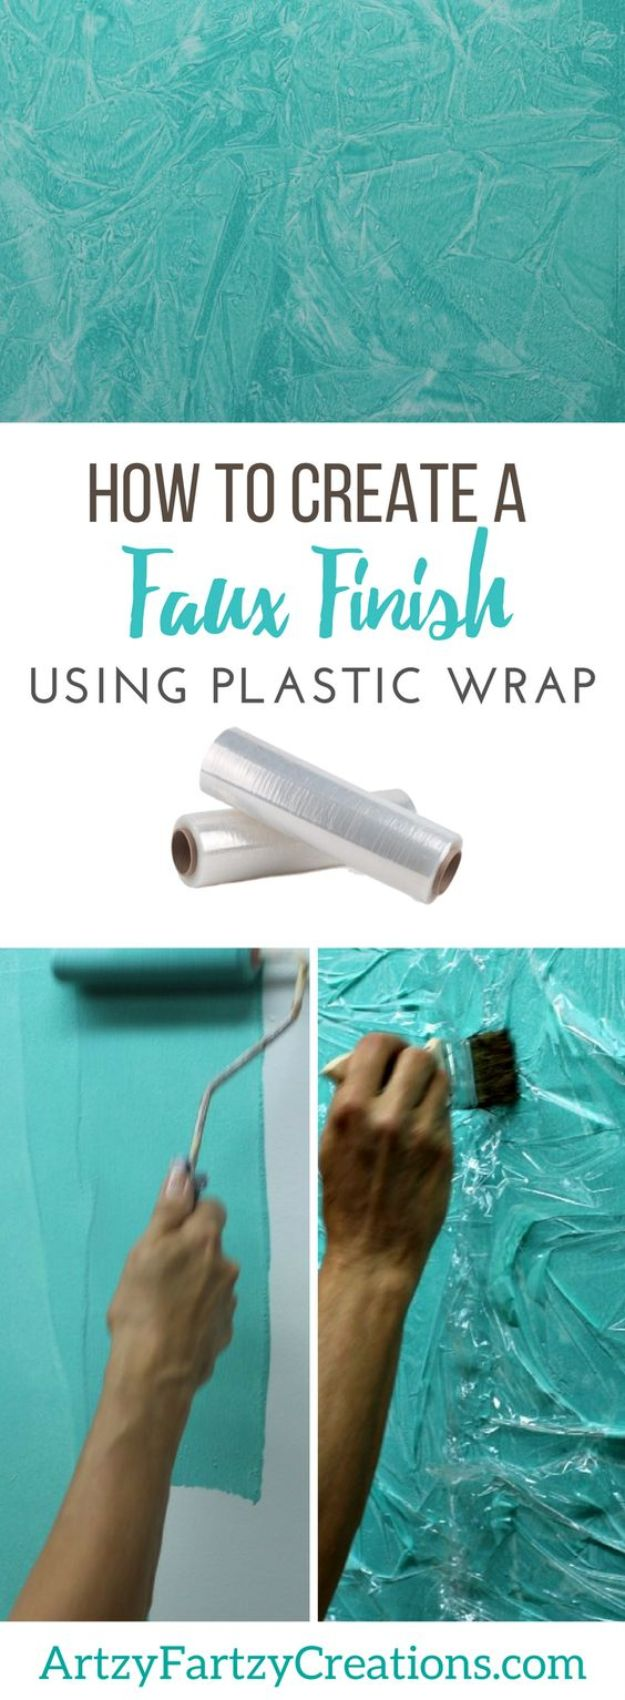 DIY Faux Finishes for Walls - Faux Finish with Plastic Wrap - Step by Step Tutorials for Do It Yourself Faux Finish Wall Textures - Rustic, Colour, Tuscan Style, Simple Metallic, Sponge Painting Techniques, Roller and Drag Texture